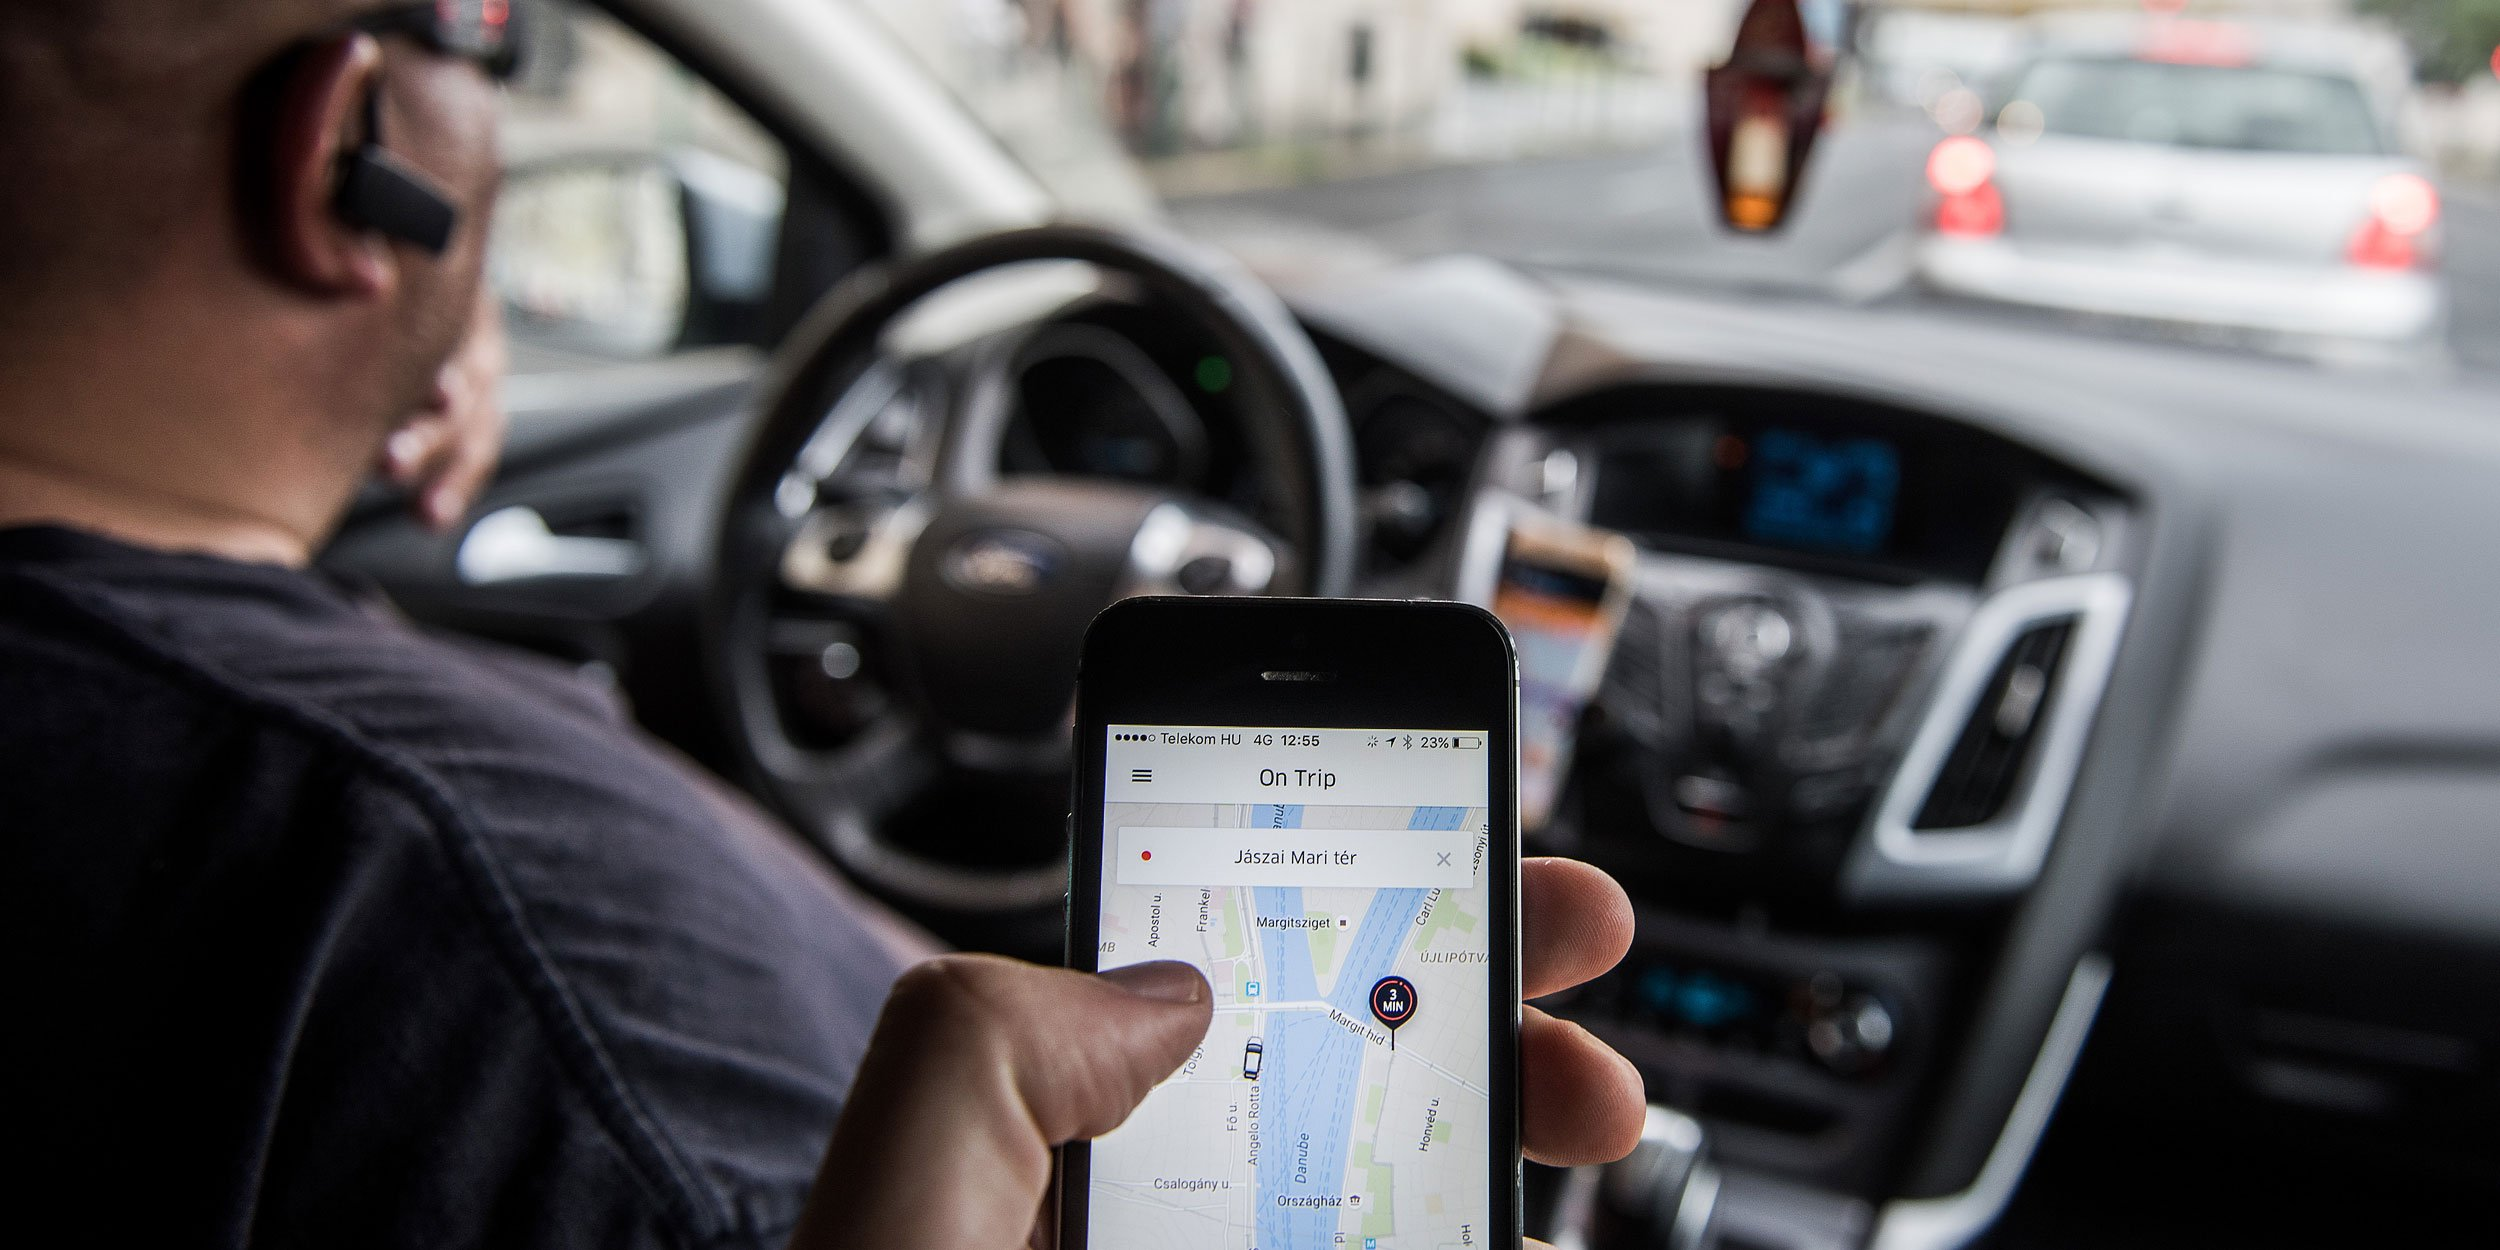 Your Uber Driver Can Secretly Report You On The App For Weed